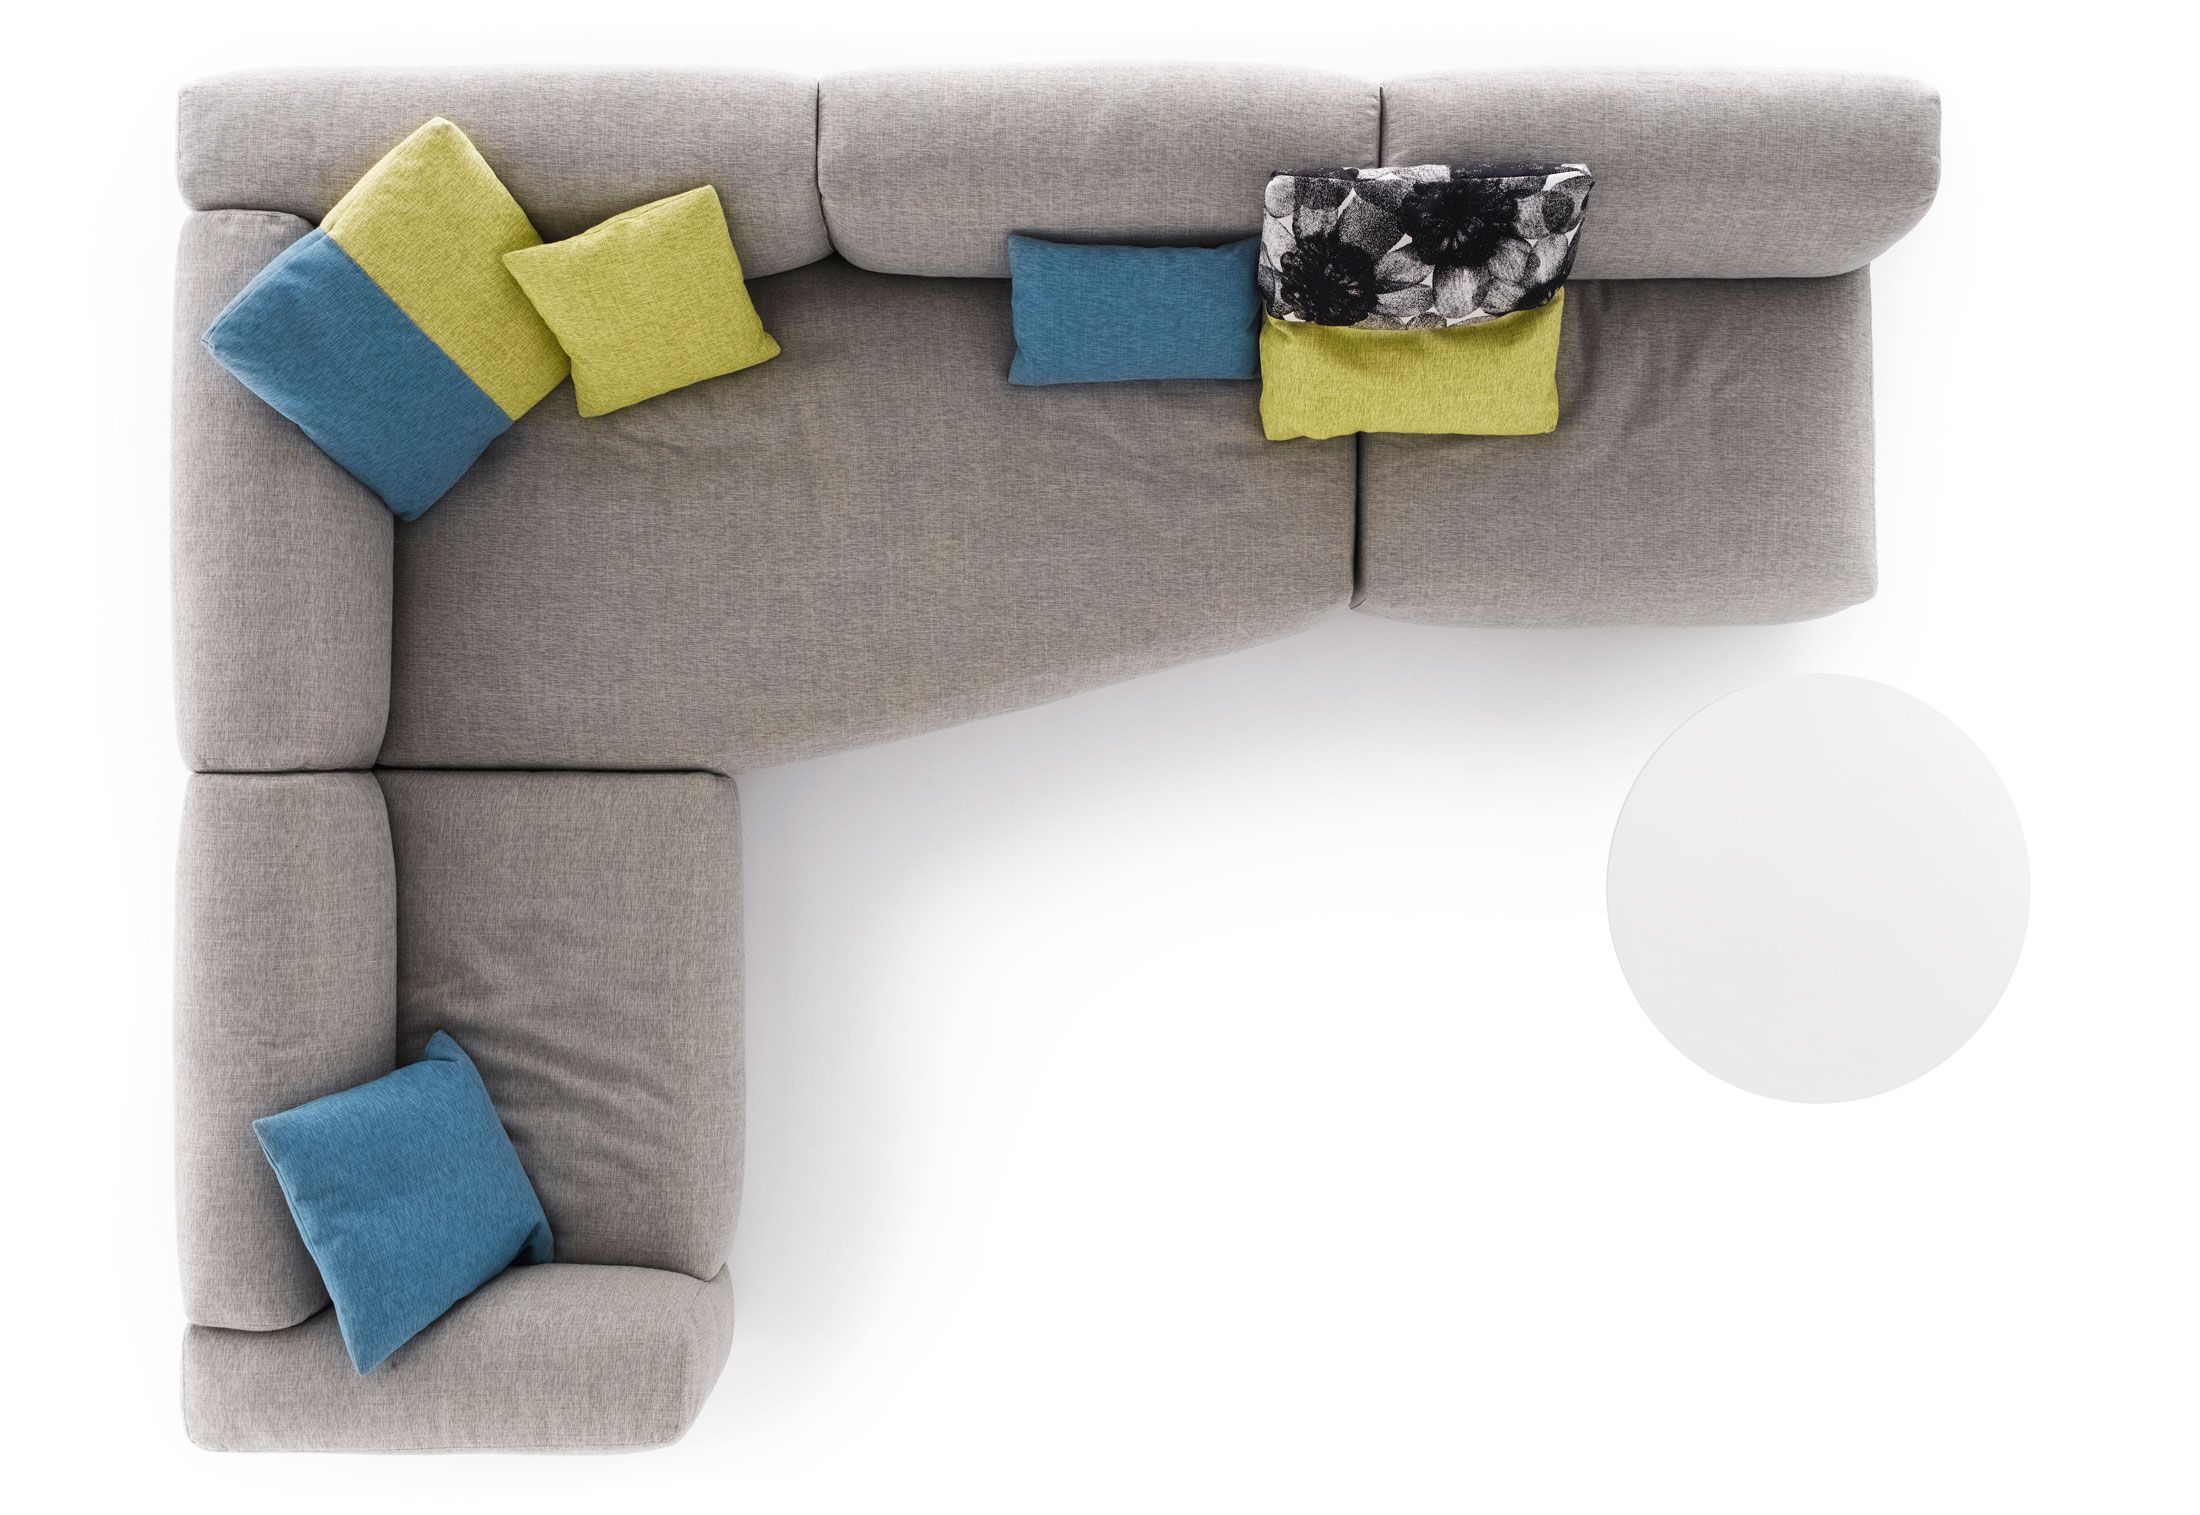 Sofa Top View Italia Sofas Design At Psd Plan Fabric